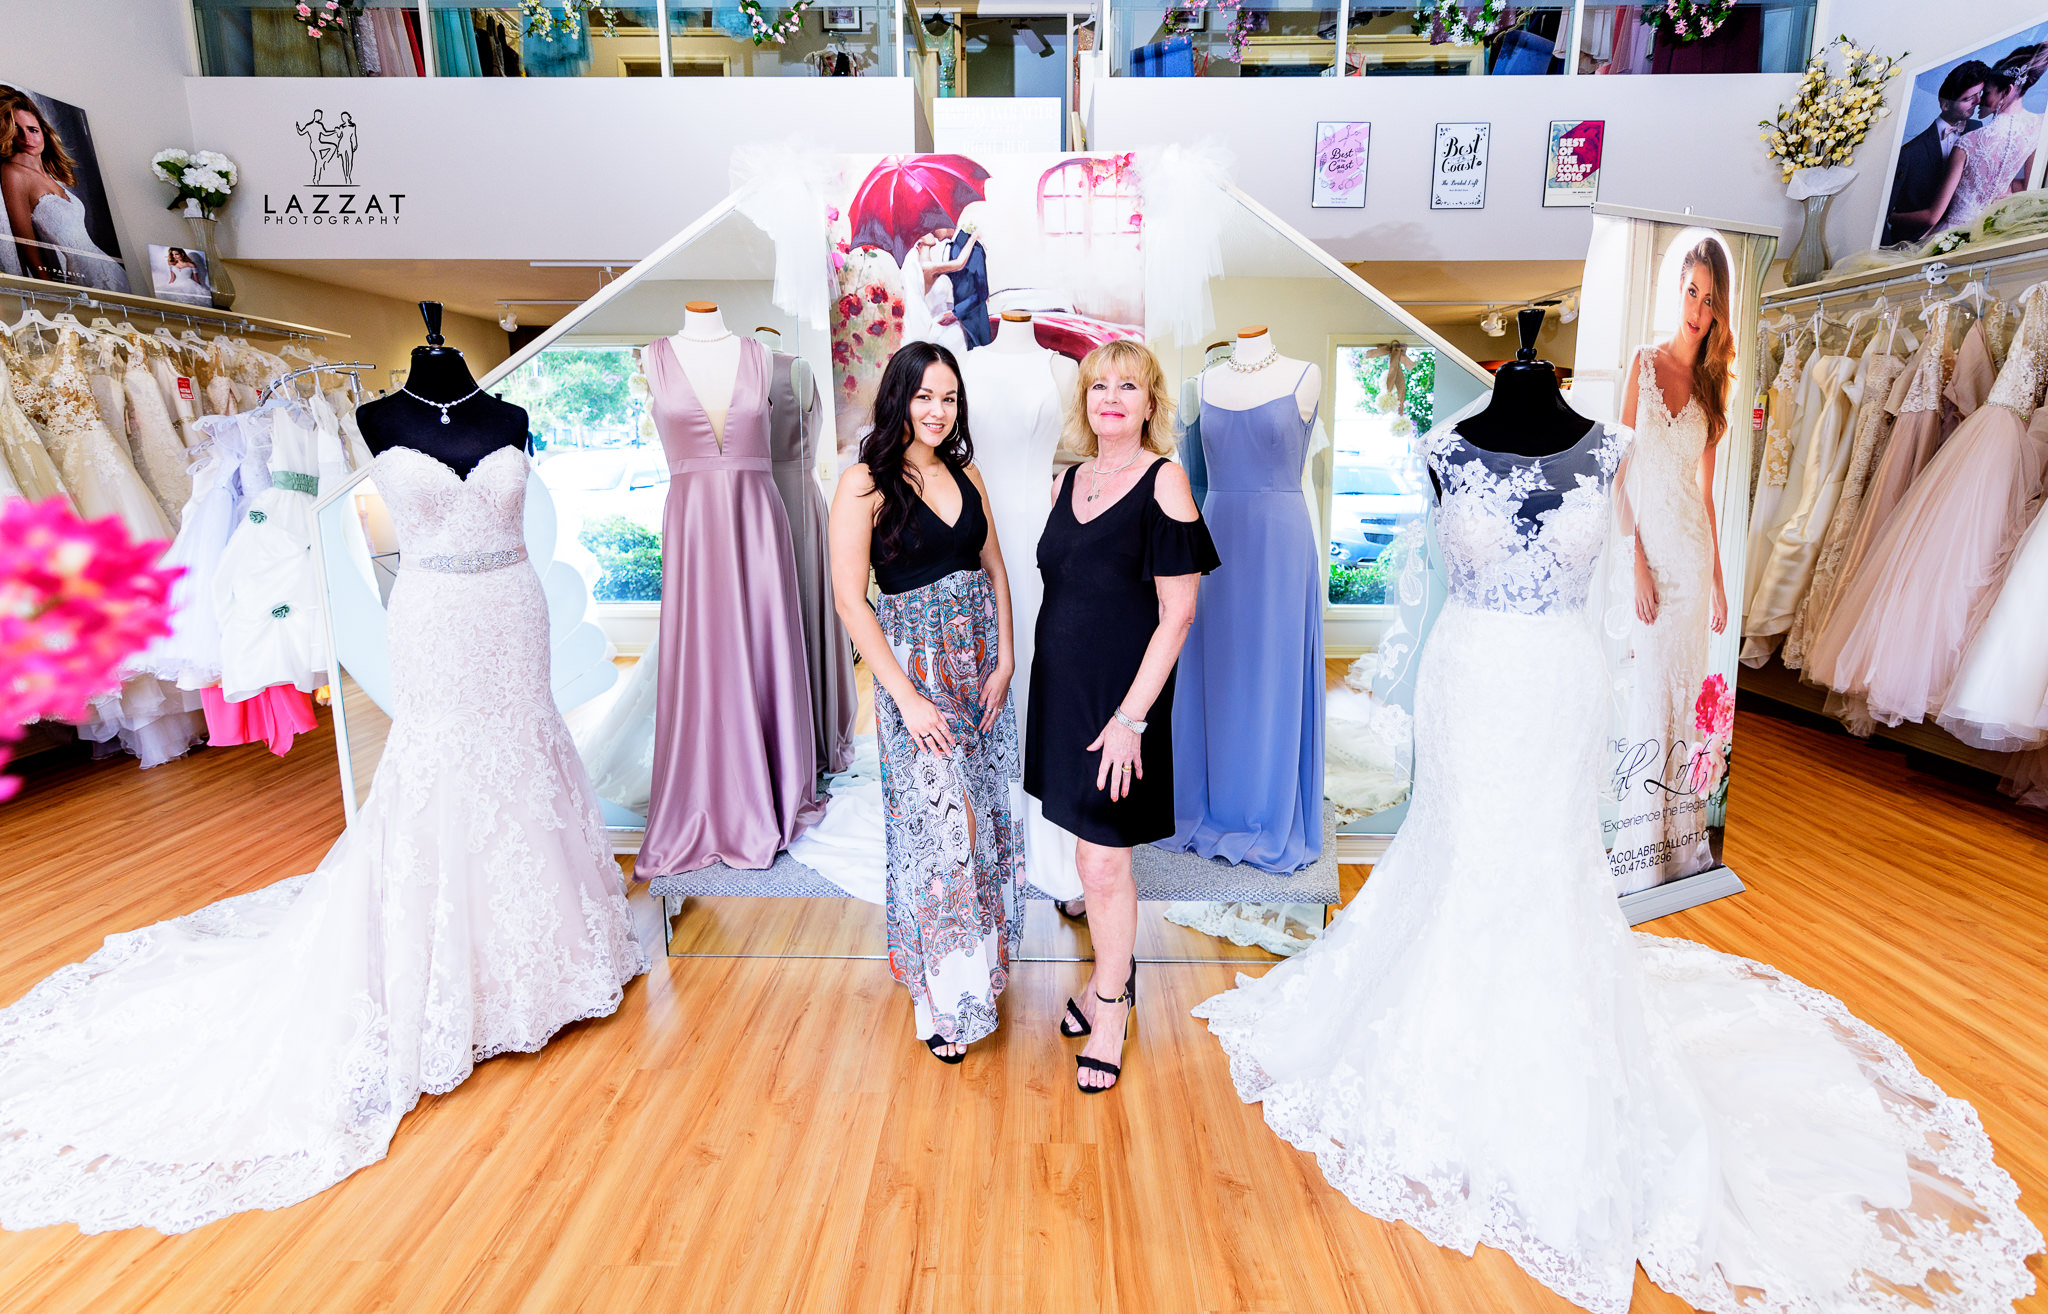 Ms. Brenda and Ms. Brandi in the Bridal Loft 2